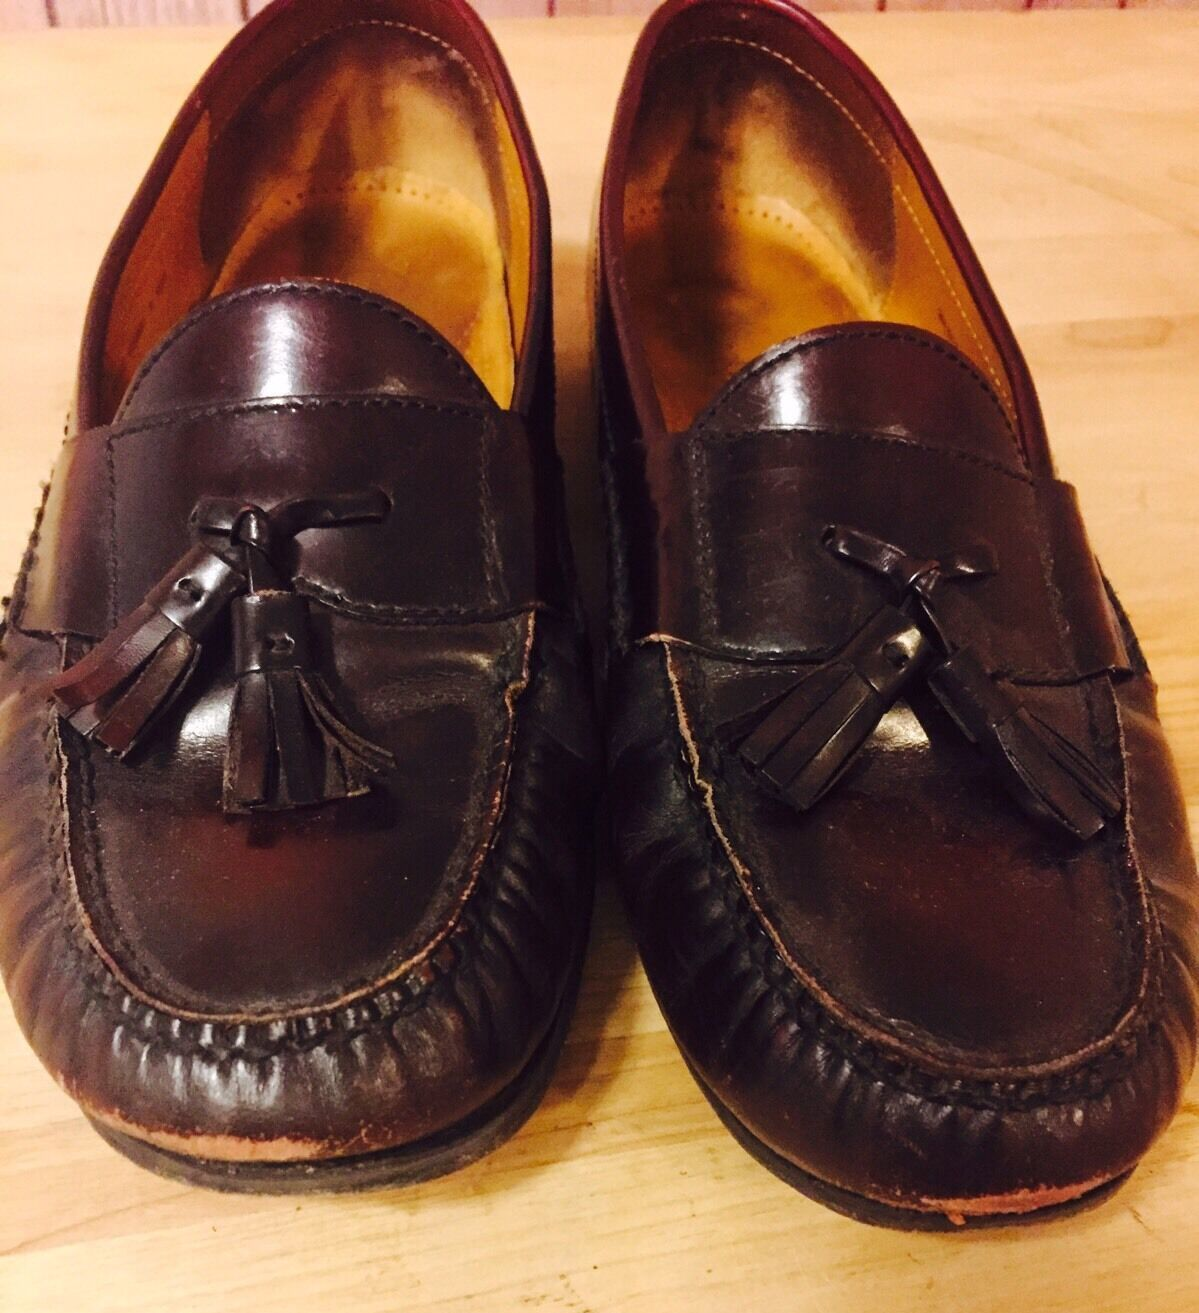 Cole Haan Deep Burgundy Leather Tassel Loafers Formal Shoe Sz 10.5 Goodyear Heel